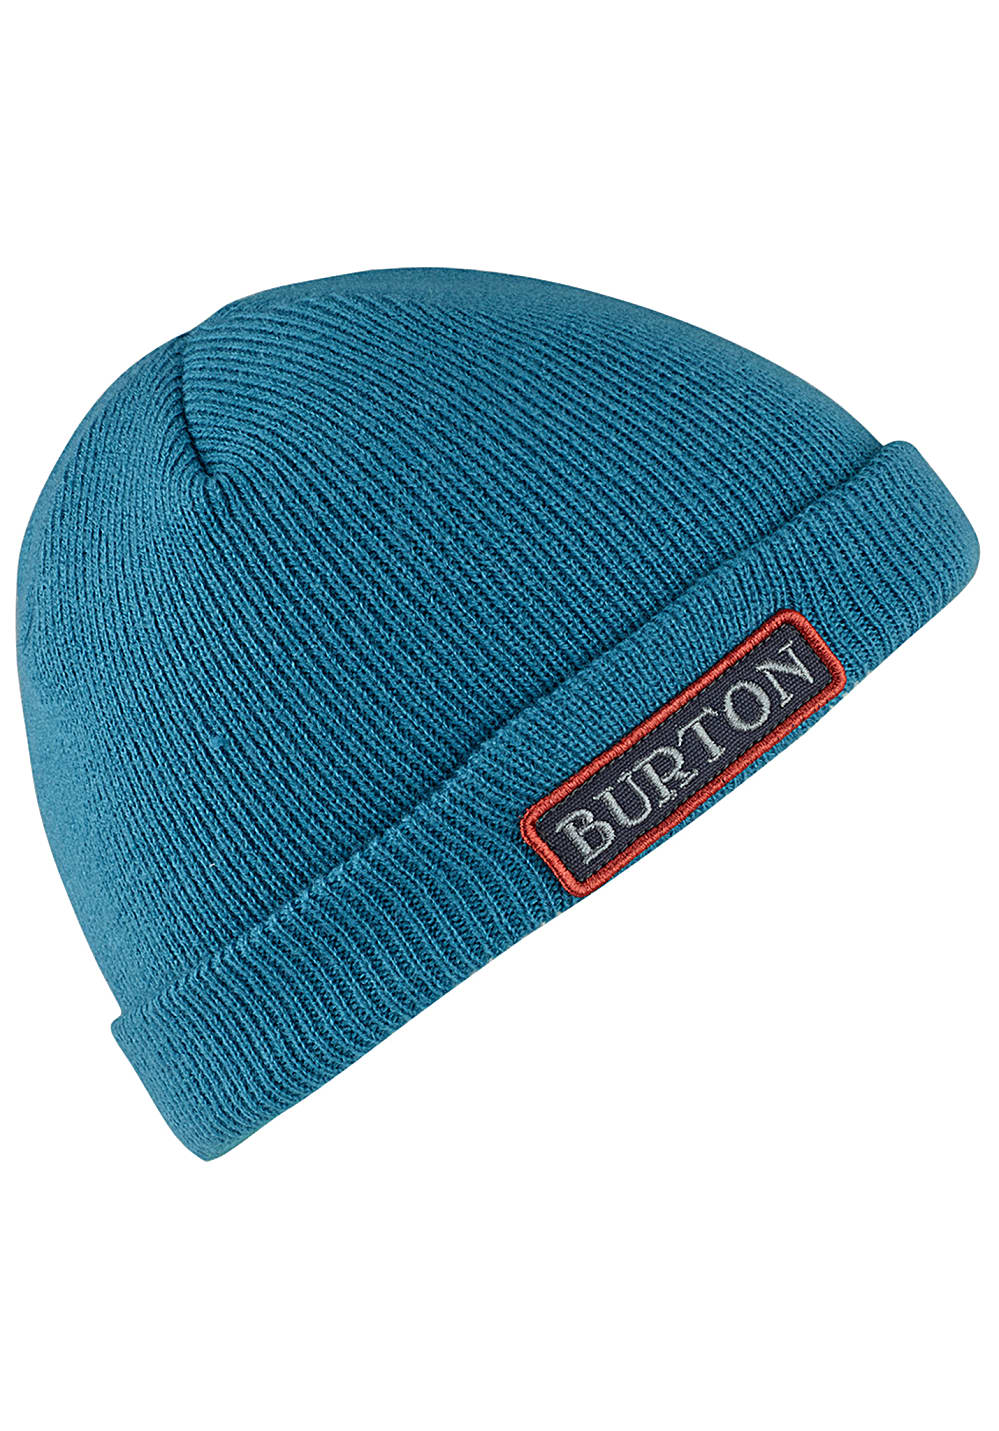 bc05a80ddf3 Burton Mini - Beanie - Blue - Planet Sports